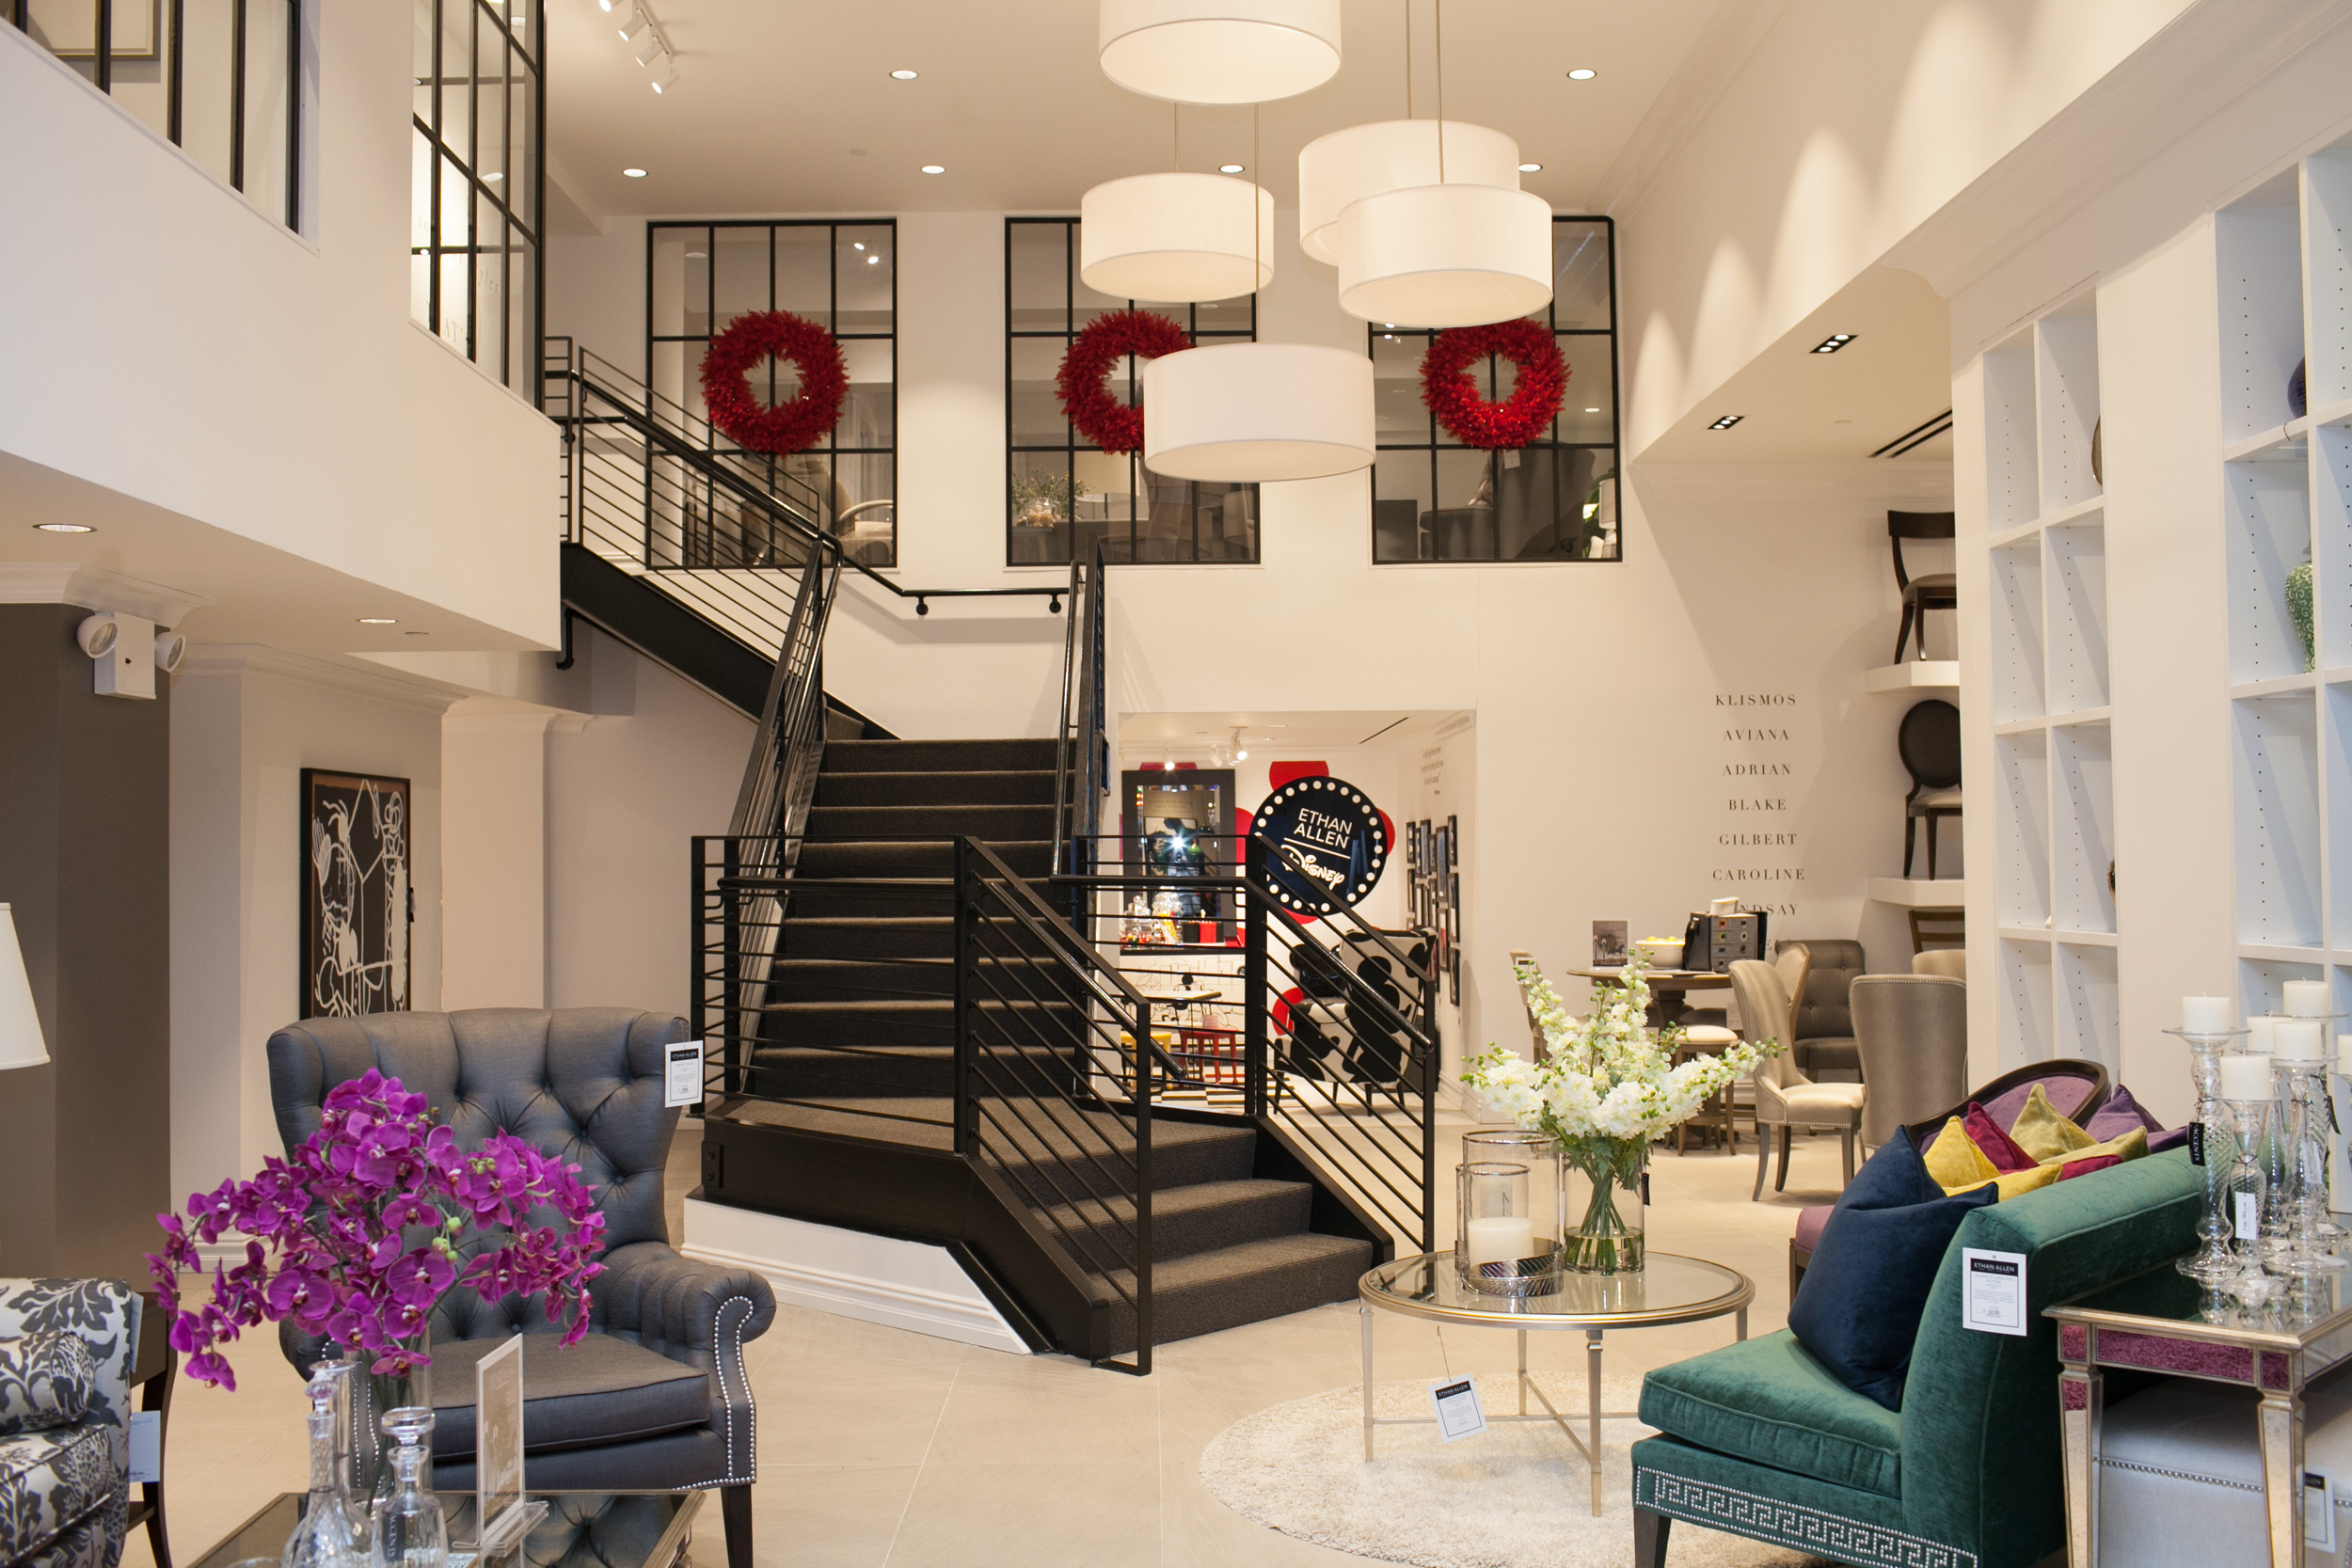 Ethan Allen's Flatiron District showroom in New York